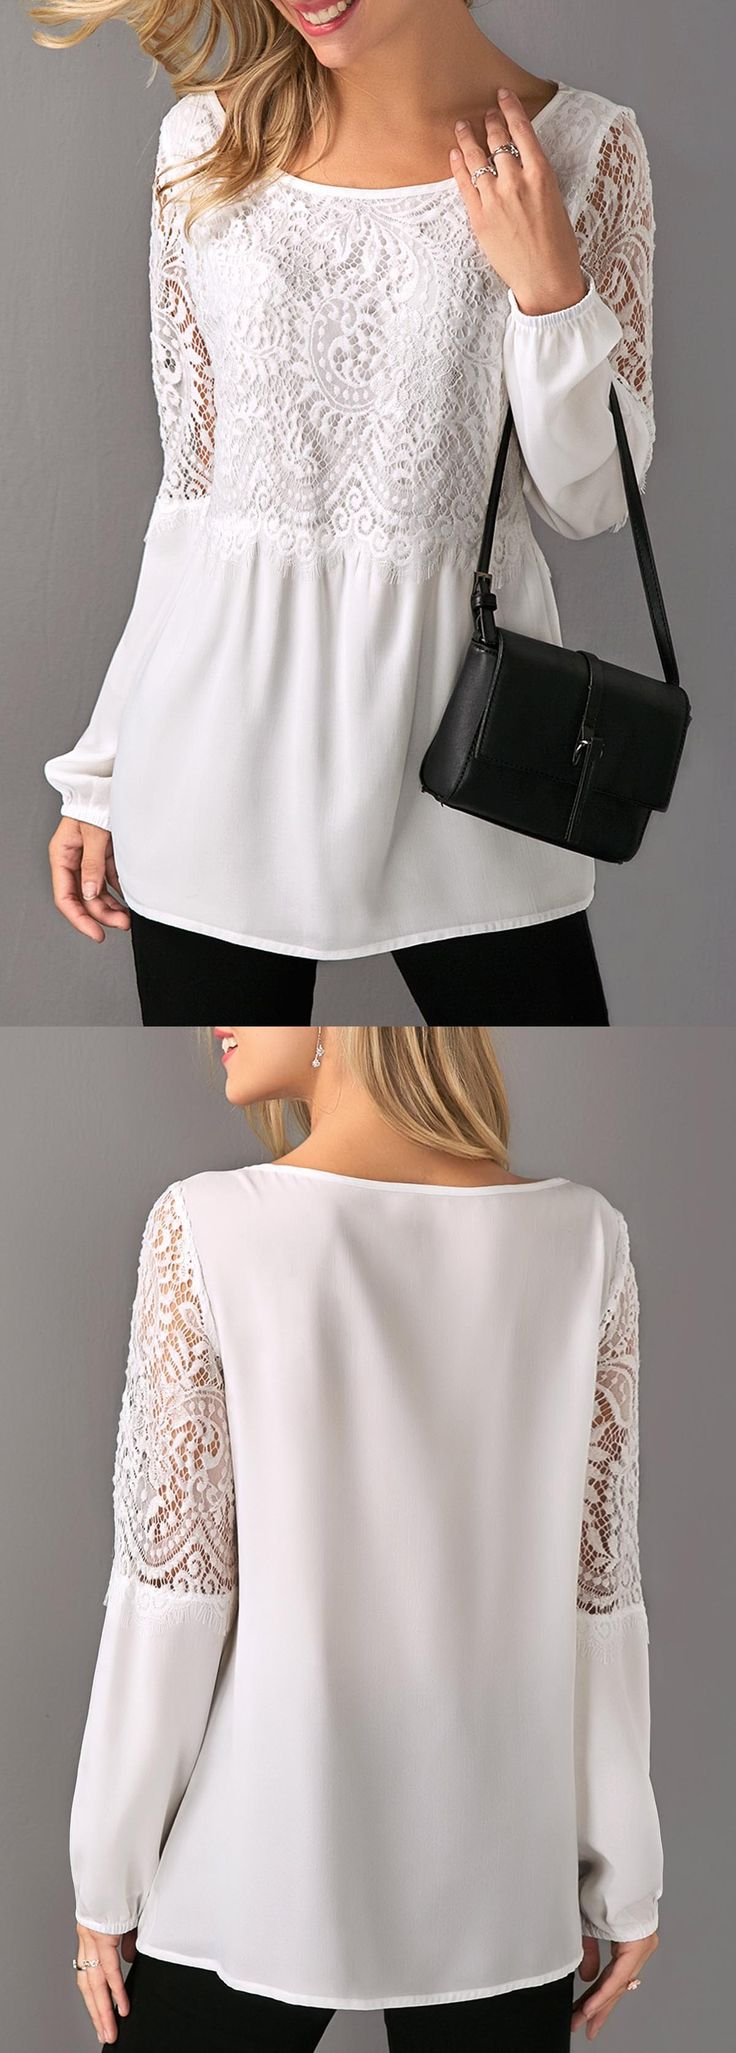 White Long Sleeve Lace Patchwork Blouse.